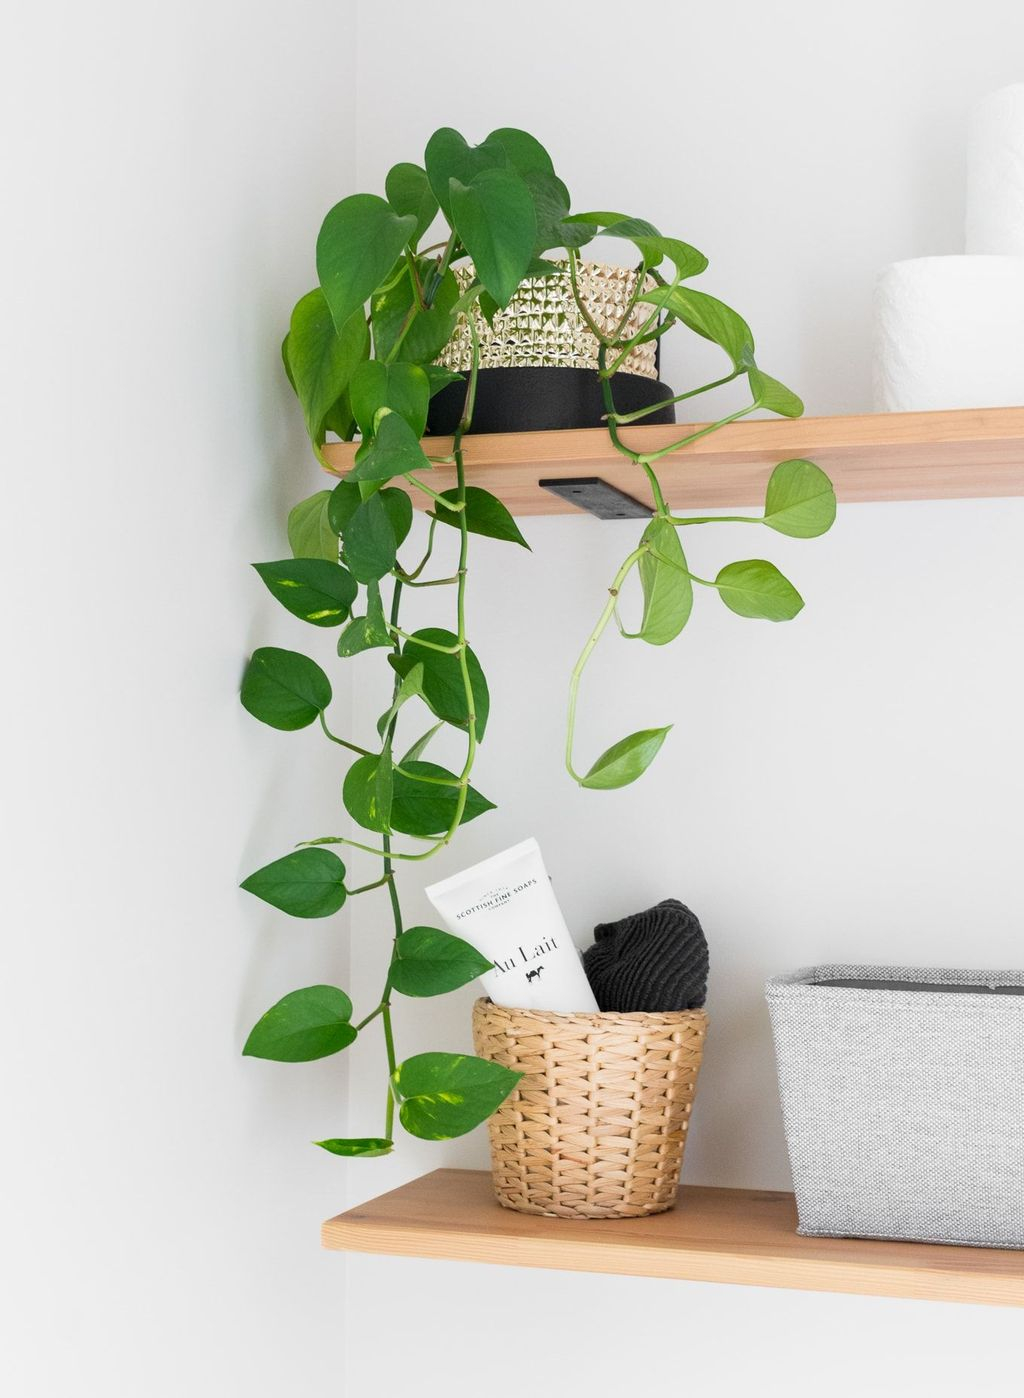 Smart Interior Design Ideas With Plants For Home 13